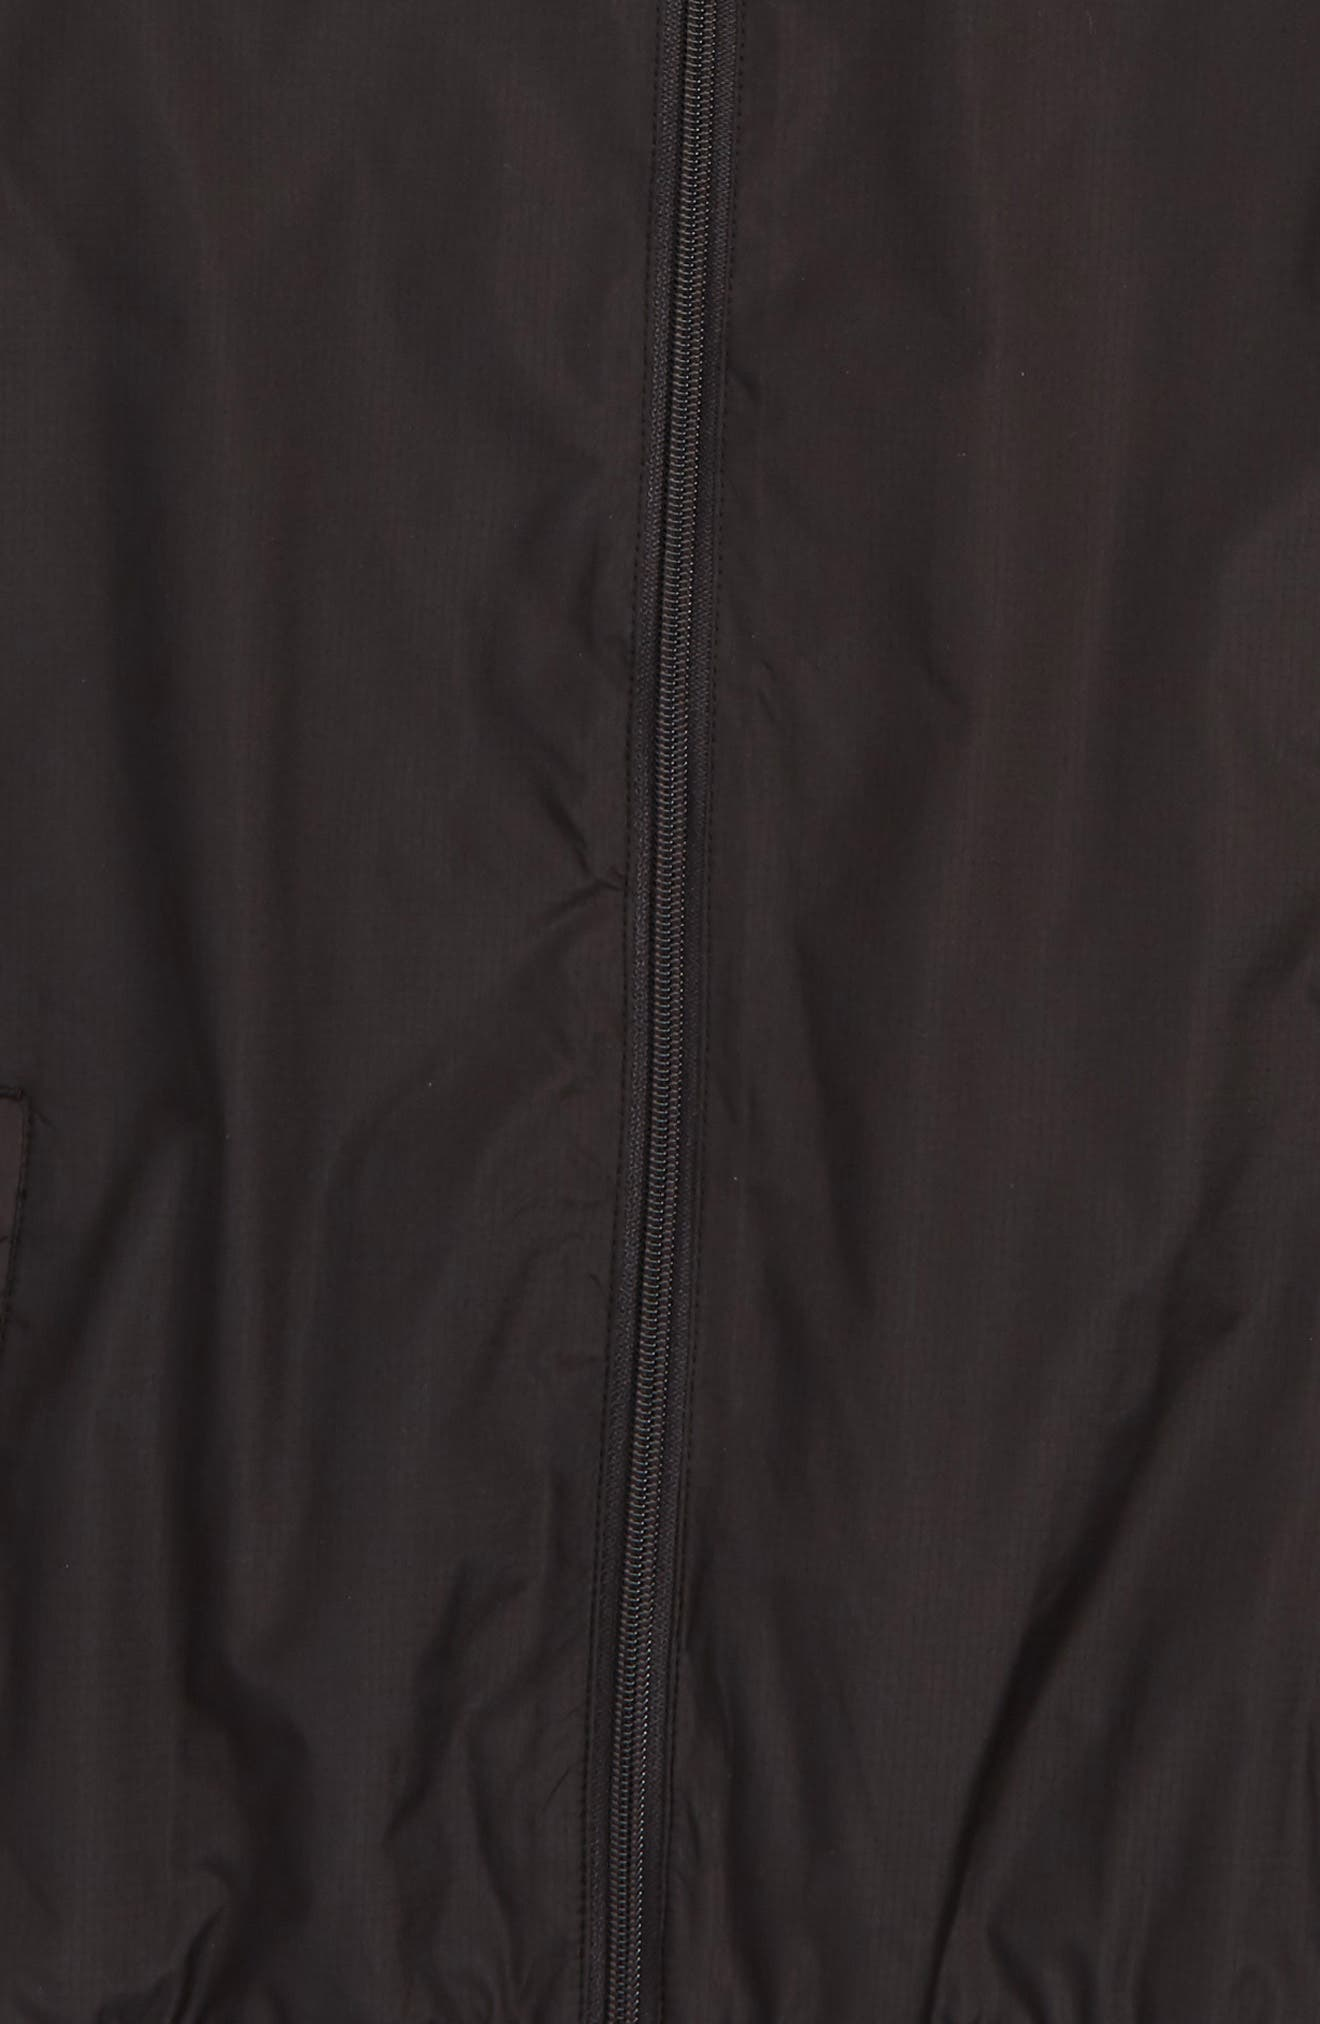 Alternate Image 2  - O'Neill Traveler Packable Windbreaker Jacket (Toddler Boys, Little Boys & Big Boys)